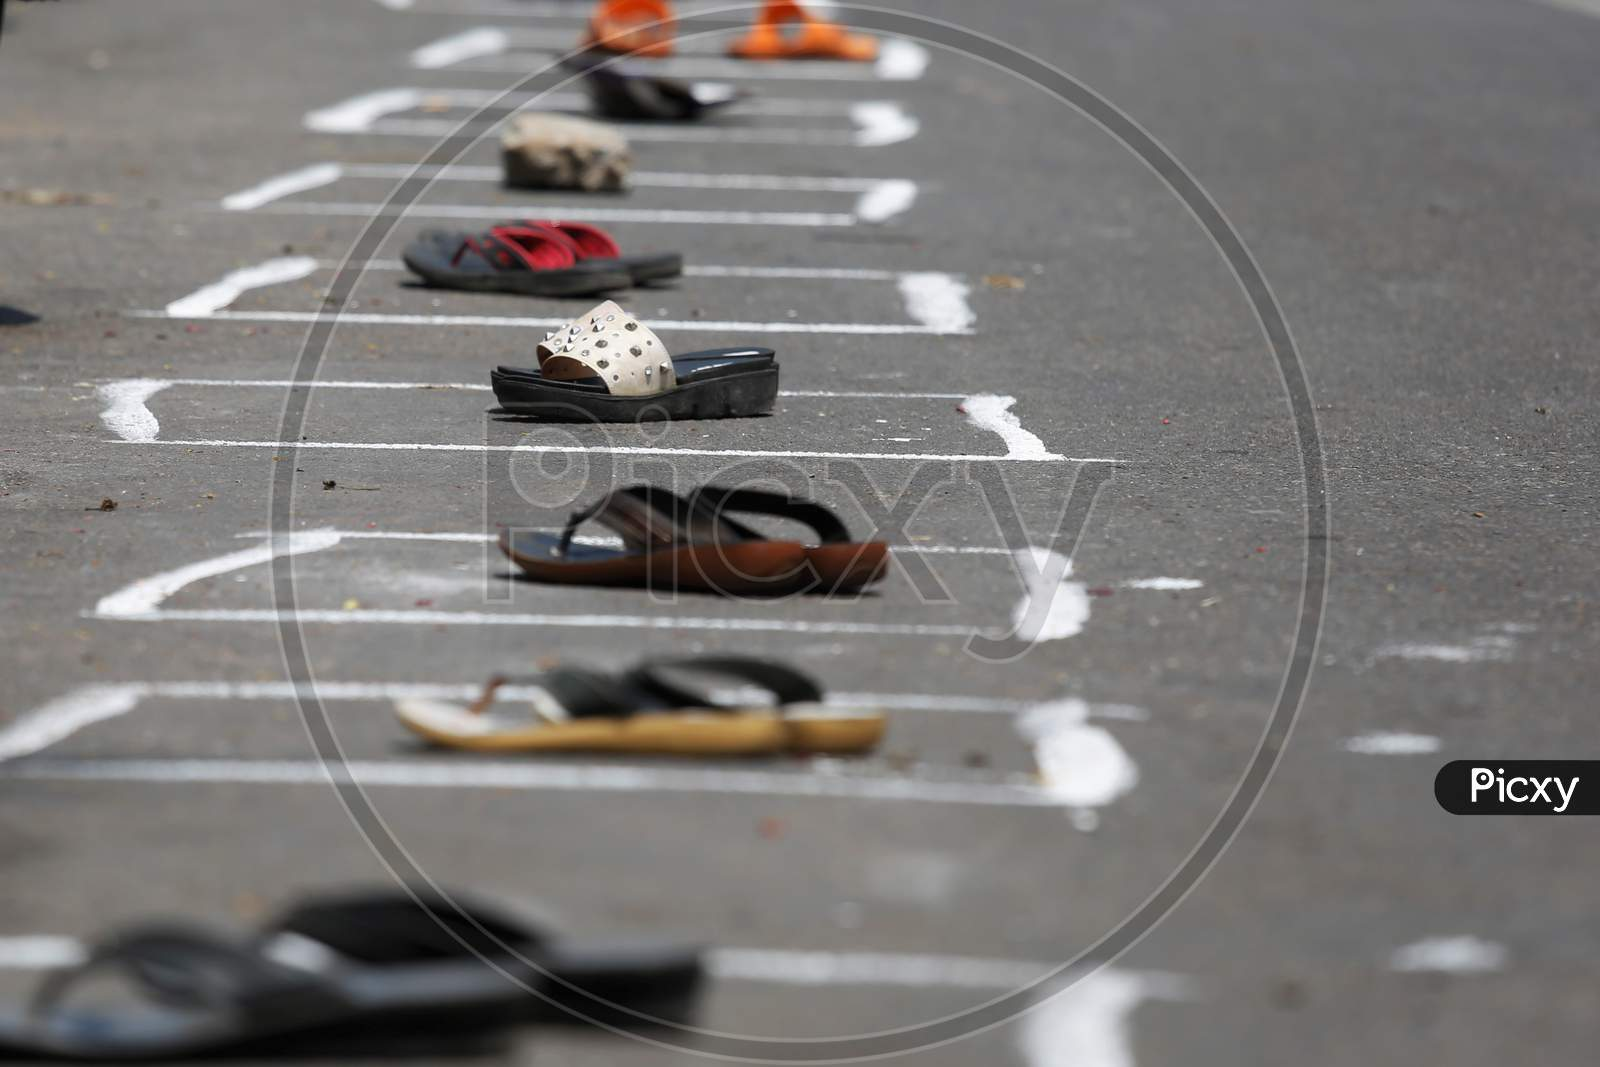 Pairs of slippers are left to secure spots in boxes drawn on a street to maintain social distancing during the nationwide lockdown to stop the spread of Coronavirus (COVID-19) in Bangalore, India, May 02, 2020.